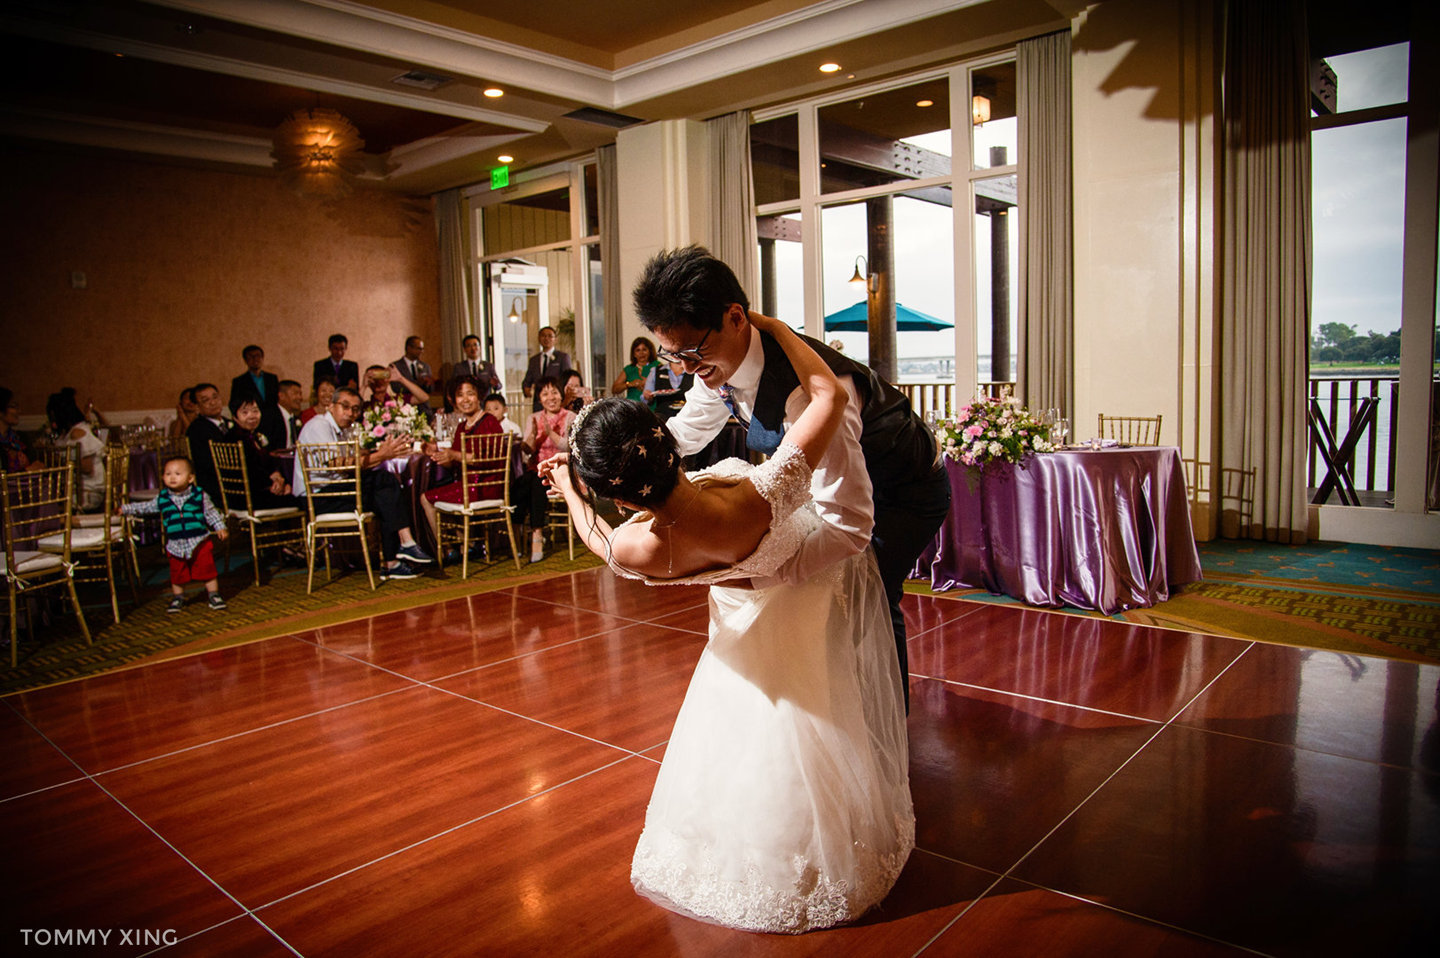 Paradise Point Resort Wedding Xiaolu & Bin San Diego 圣地亚哥婚礼摄影跟拍 Tommy Xing Photography 洛杉矶婚礼婚纱照摄影师 234.jpg